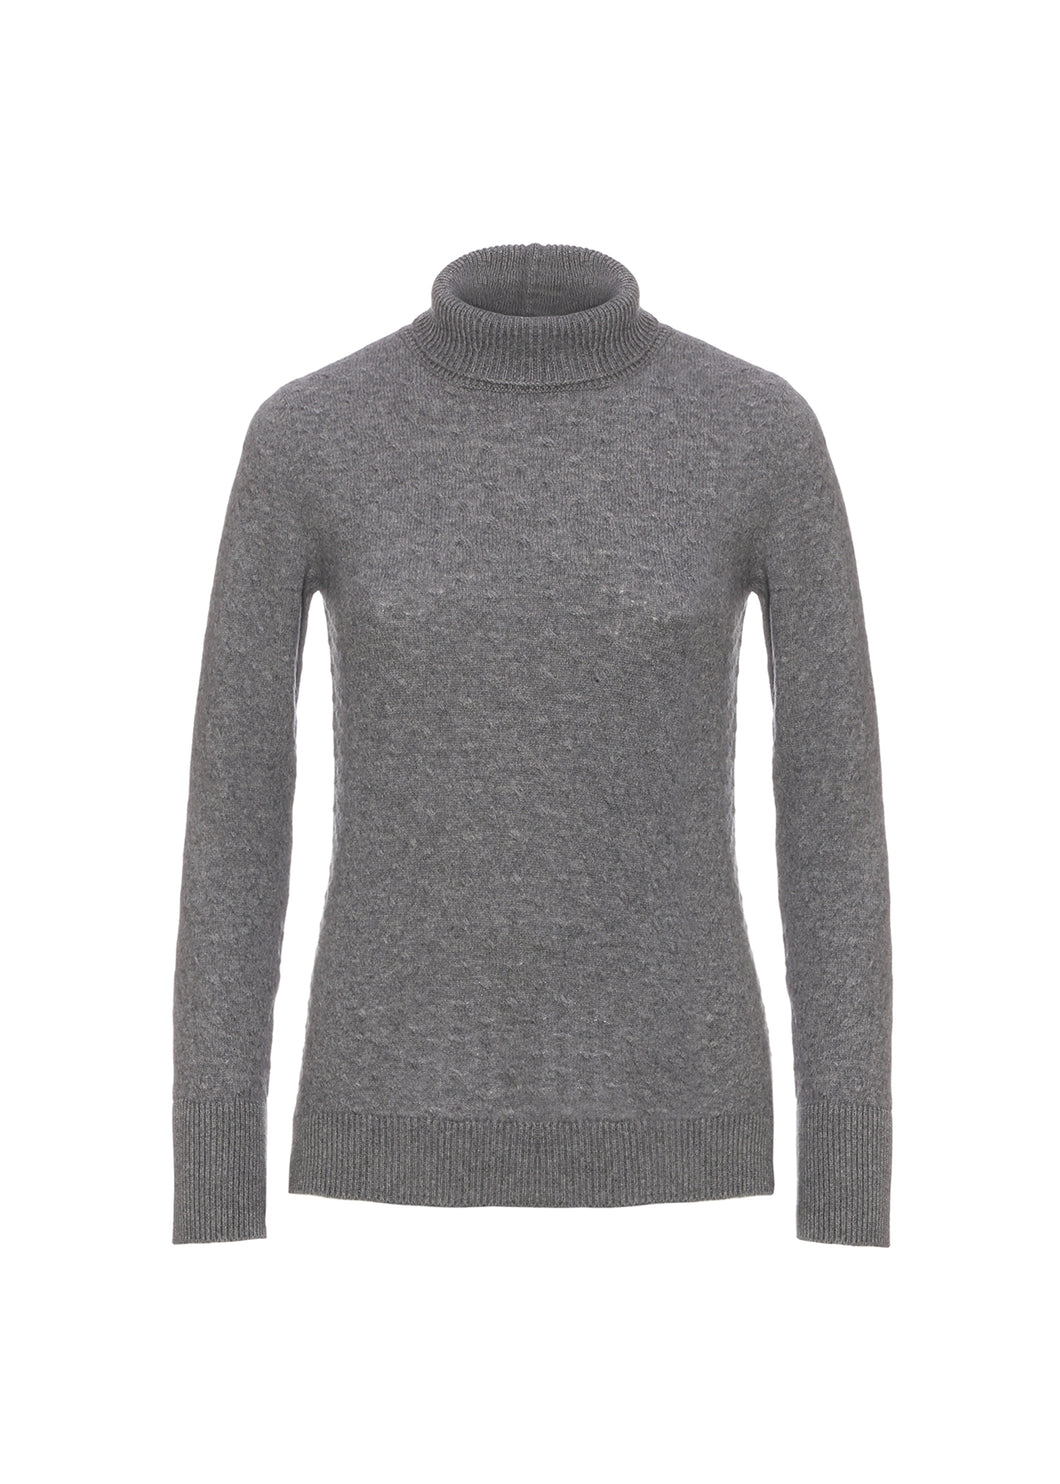 Evanescent turtleneck